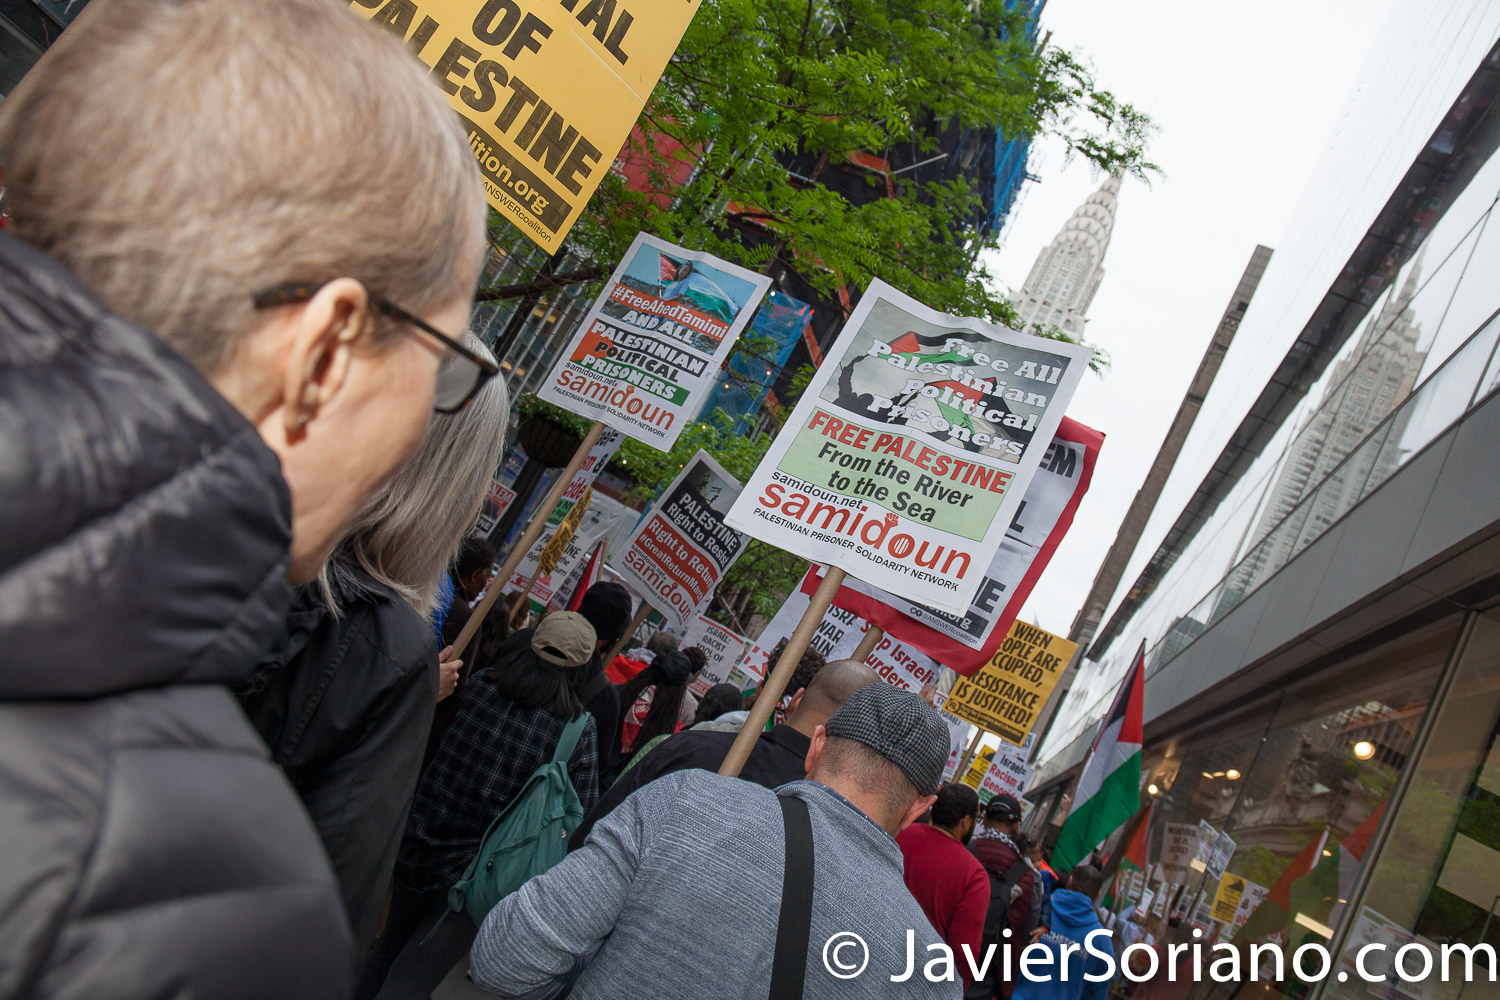 5/18/2018. New York City - Supporters of Palestine marching from Times Square to the Israeli consulate. Photo by Javier Soriano/www.JavierSoriano.com